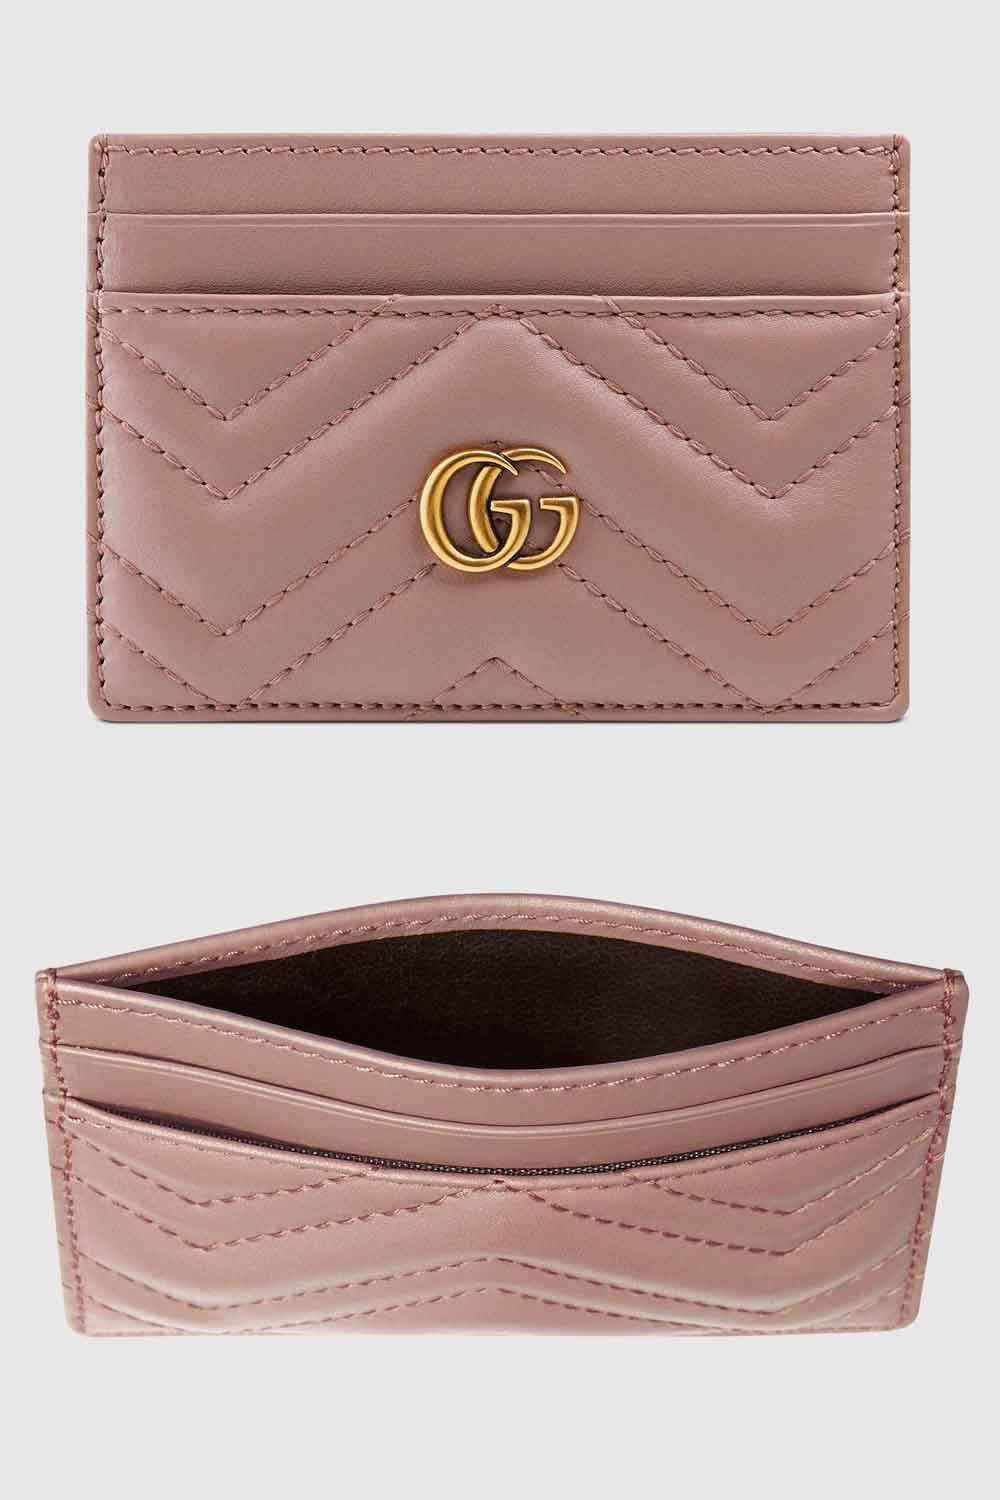 The-best-luxury-gifts-for-her-women-Gucci-Marmont-GG-card-holder-dusty-pink